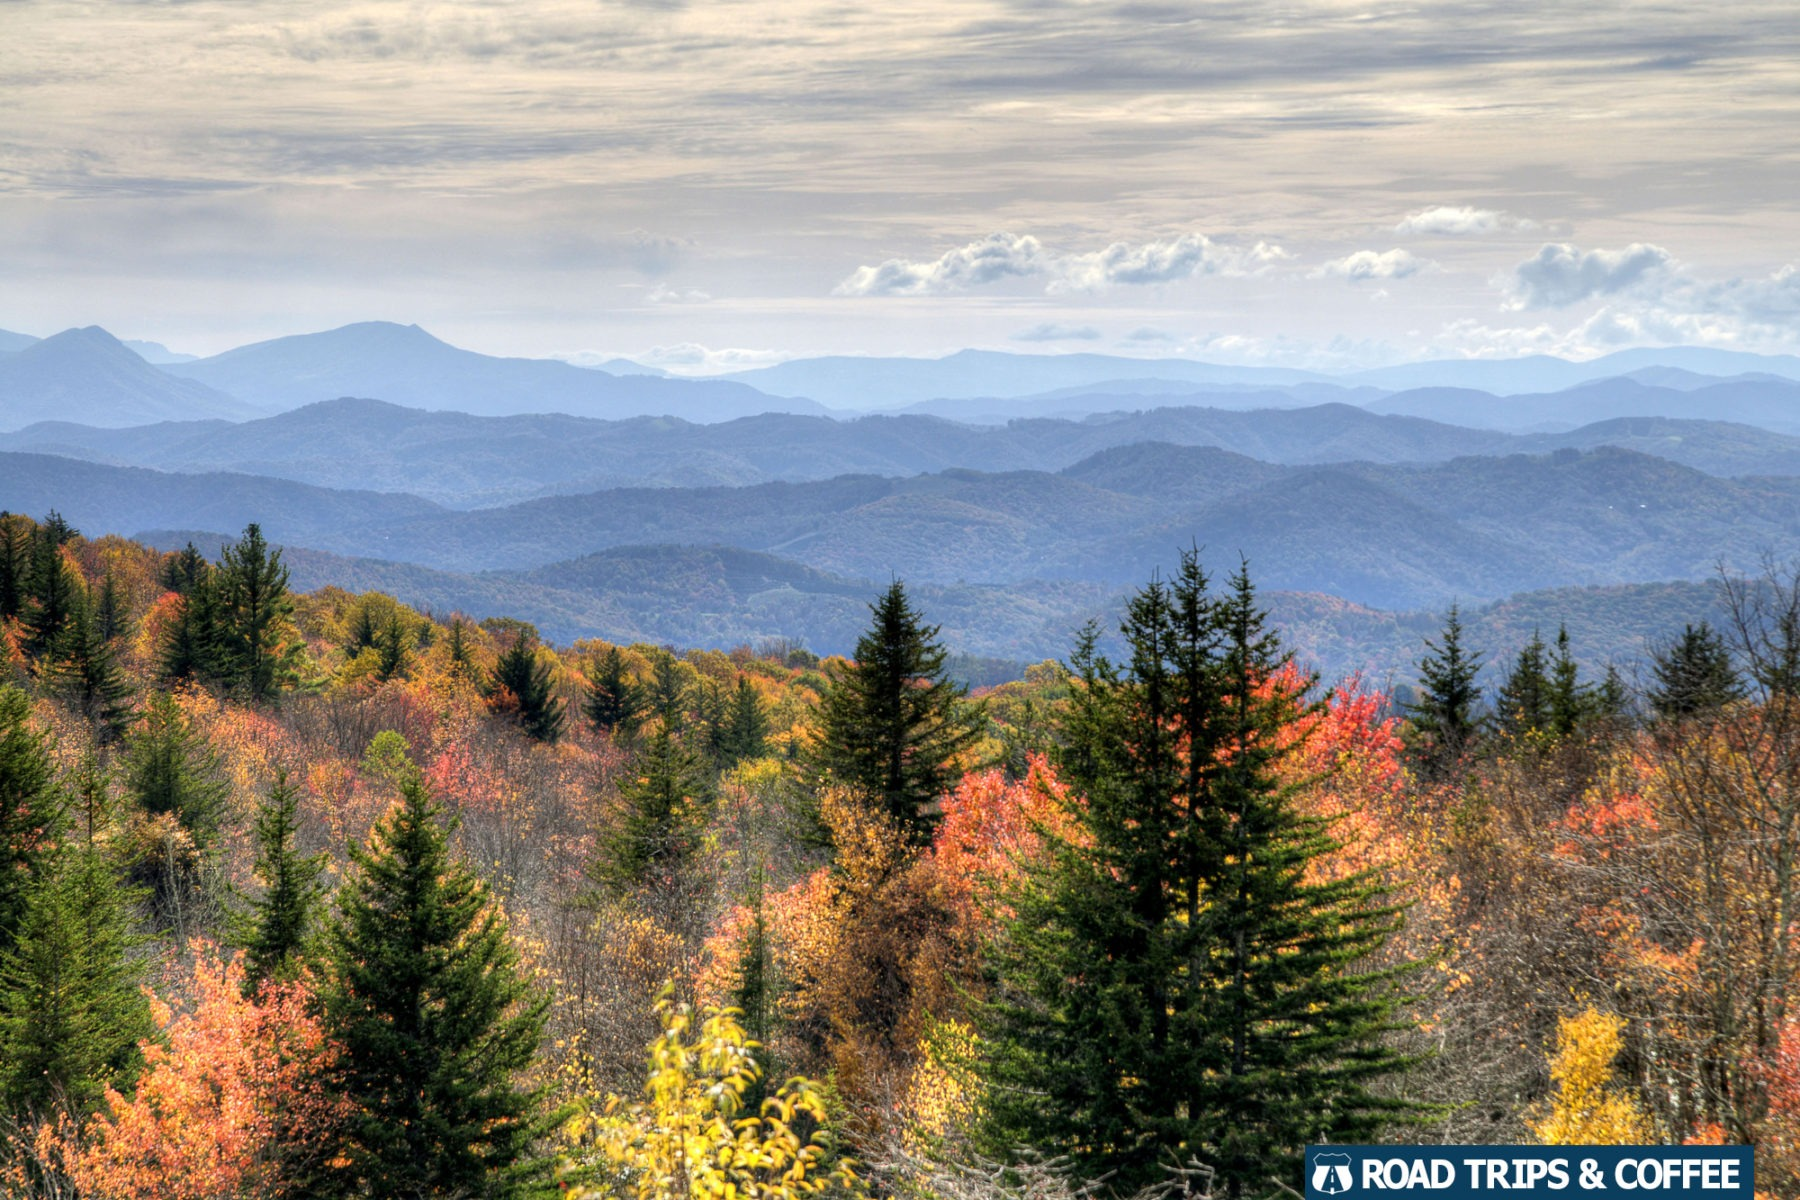 Fall colors with a wide mountain vista on the Massie Gap Trail at Grayson Highlands State Park in Virginia